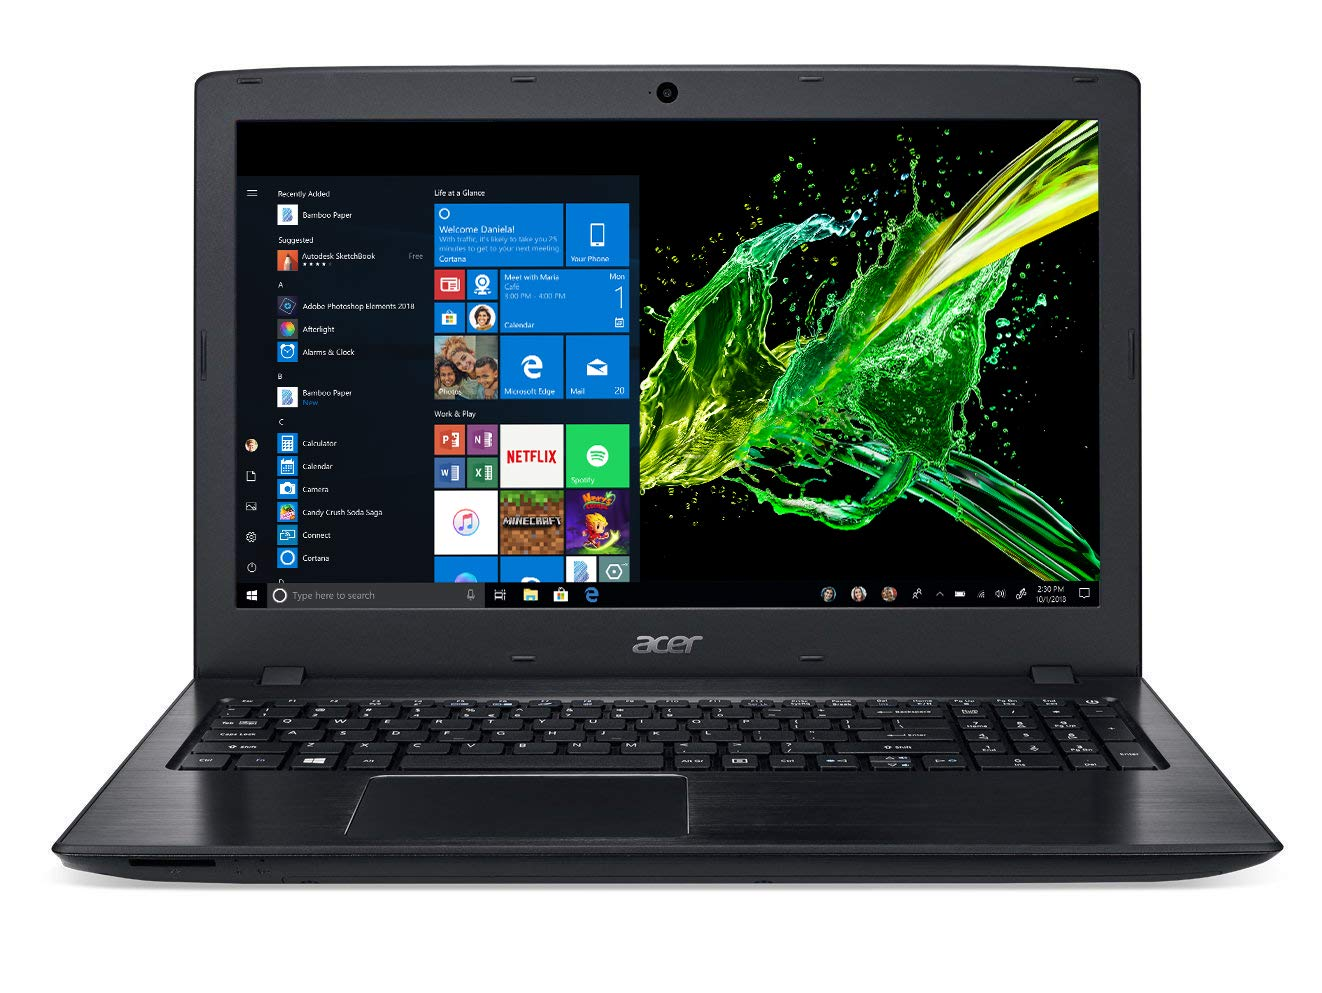 ACER ASPIRE 5672 BLUETOOTH WINDOWS XP DRIVER DOWNLOAD